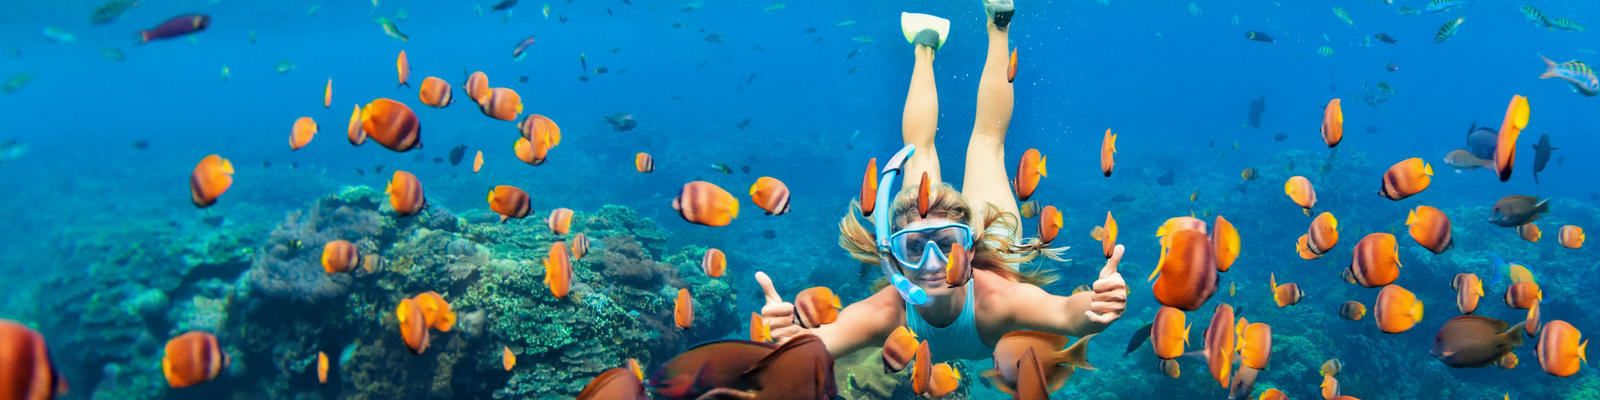 How to Prepare for a Snorkel and Dive Cruise (Photo: Tropical studio/Shutterstock.com)